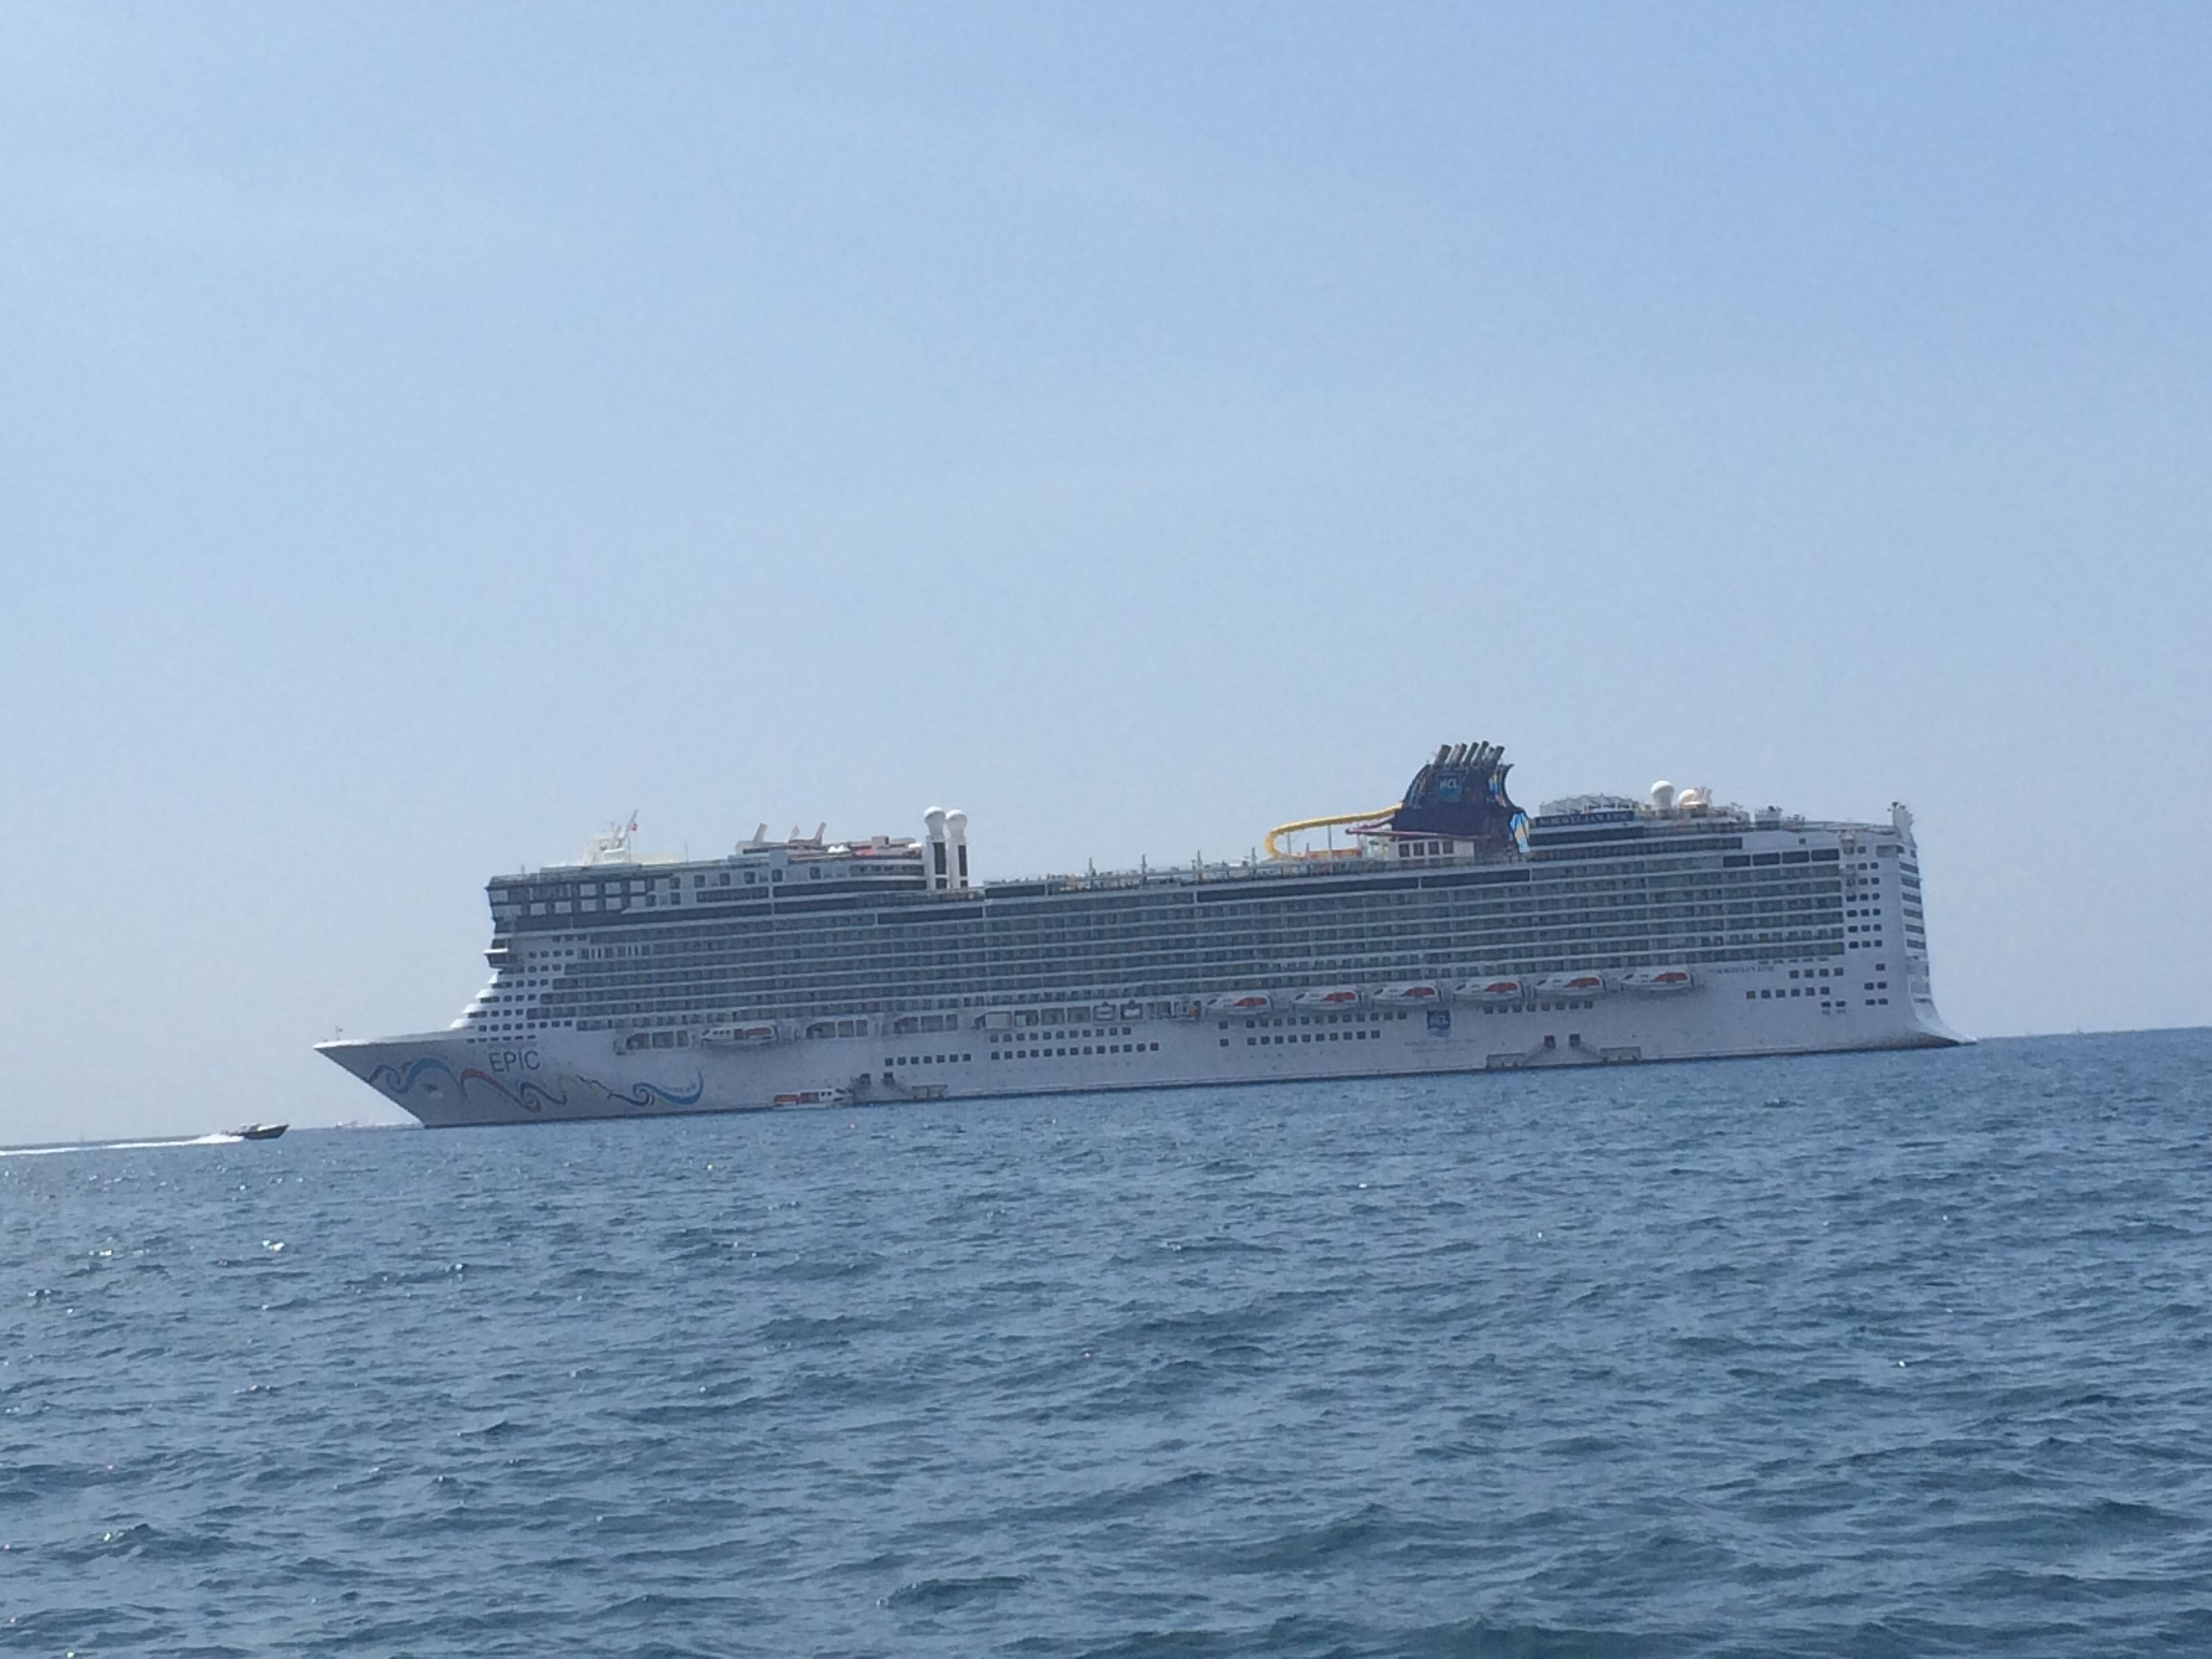 The Nd Biggest Cruise Ship In The Worldthe NCL Epic My Wish - Biggest cruise ships list